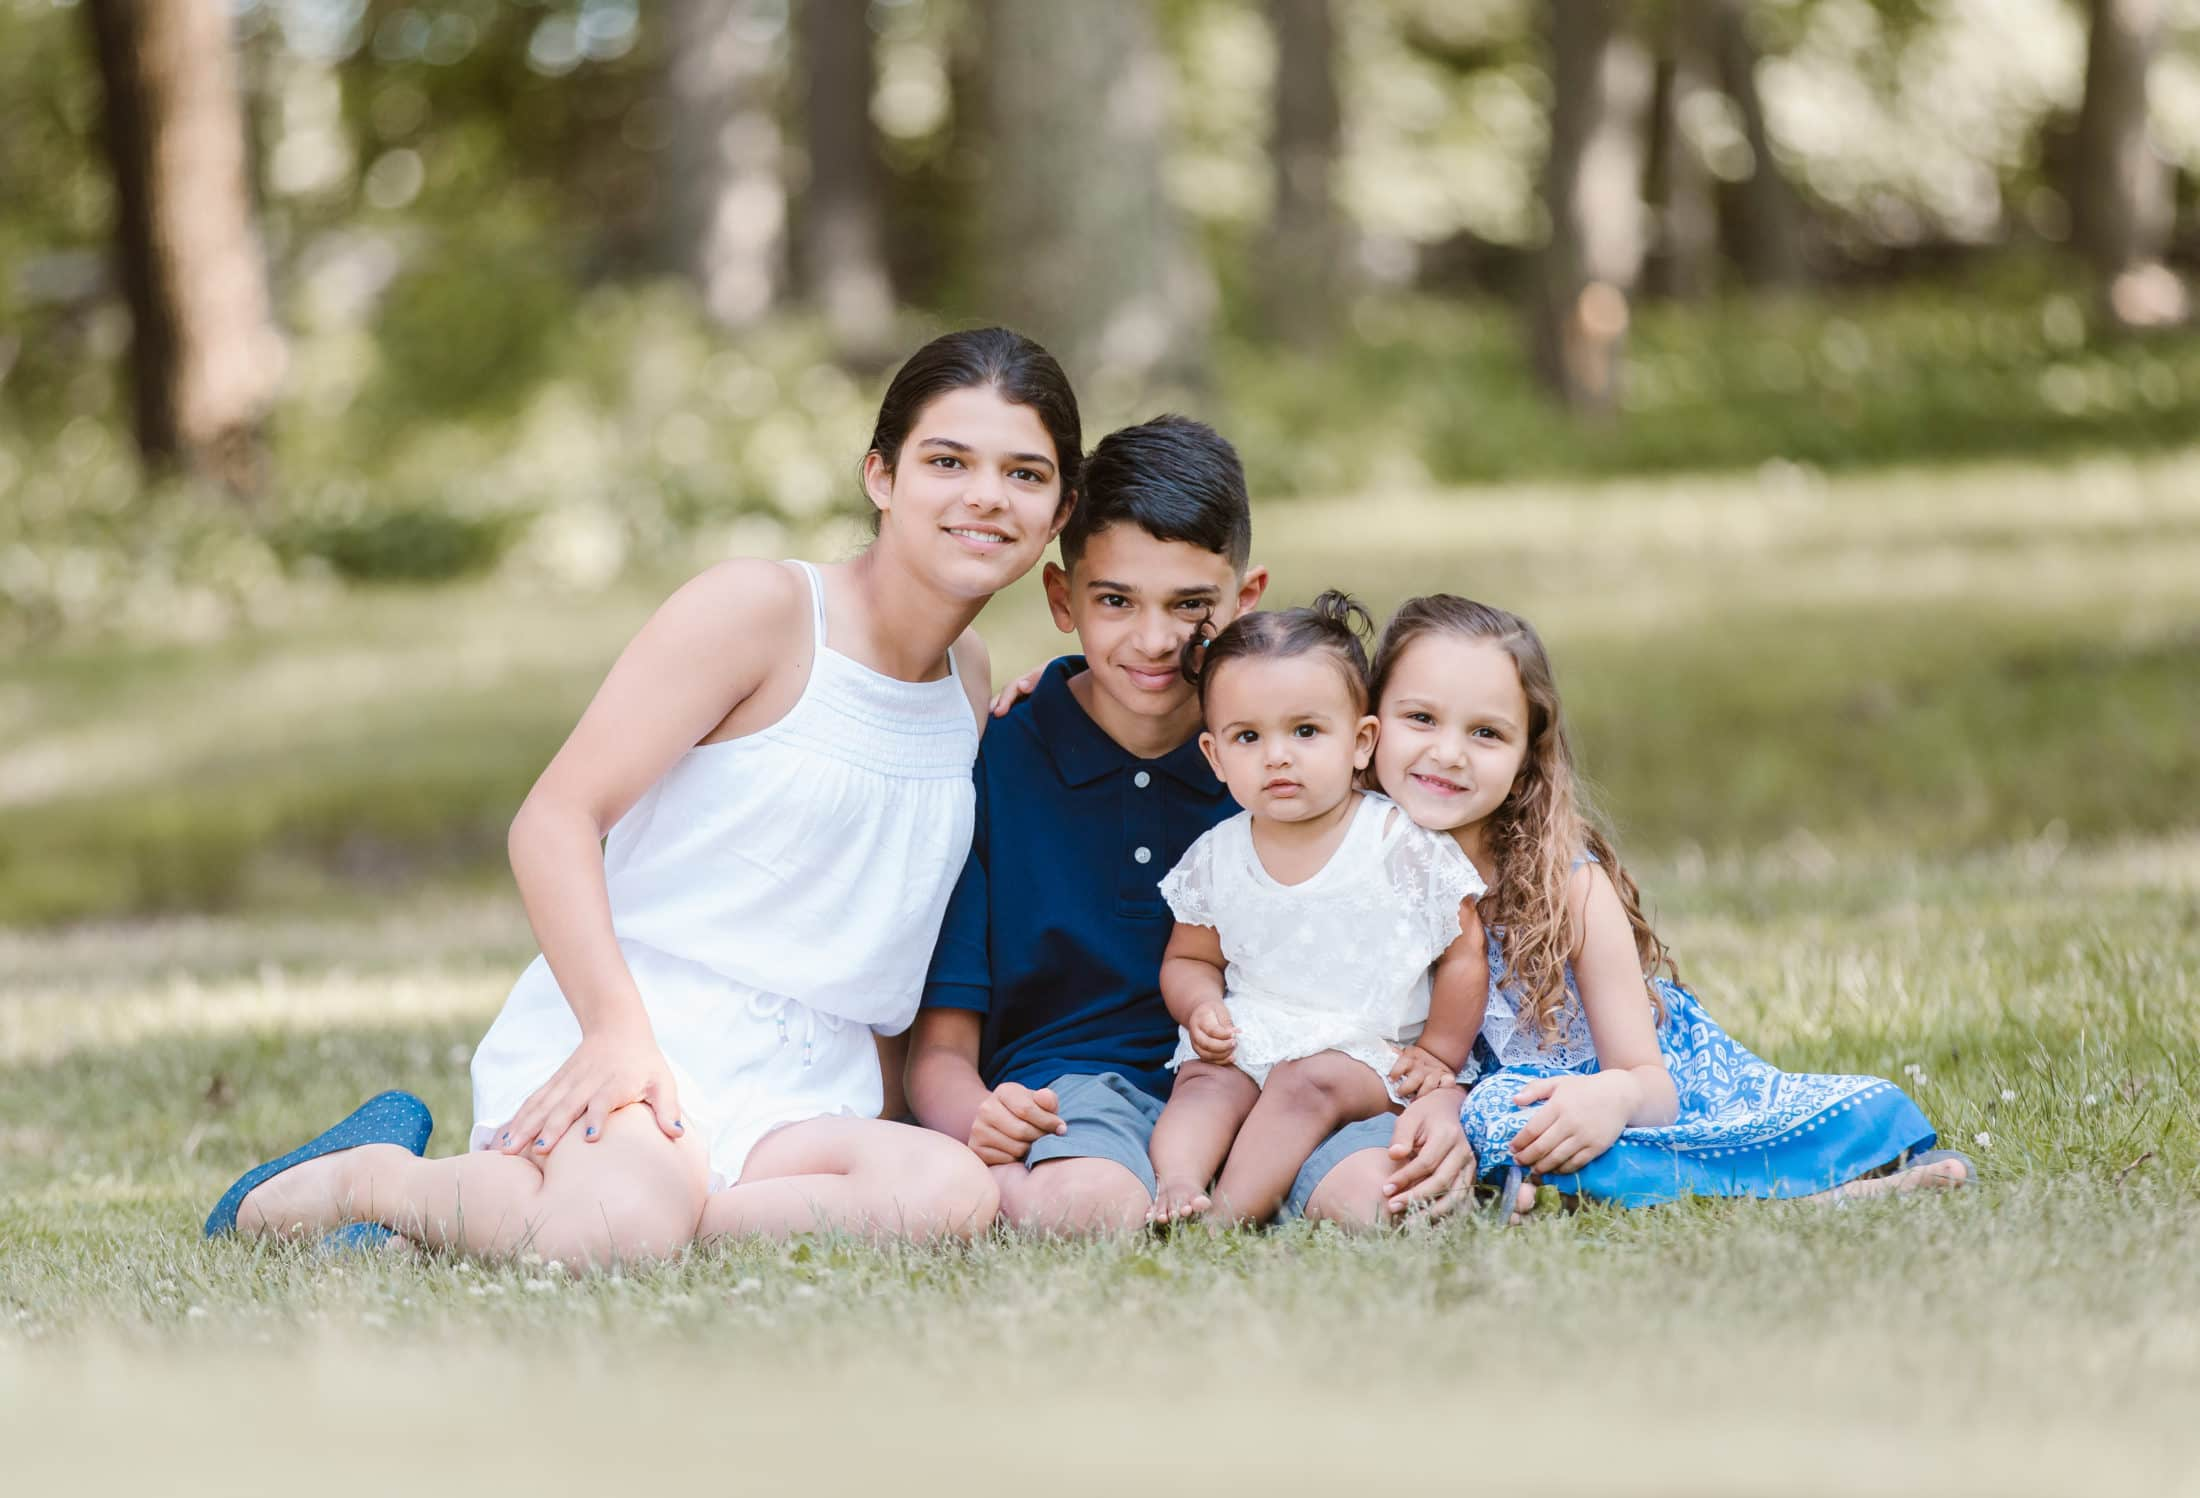 Family poses outside at the park during the Public Safety event photographed by Massart Photography RI